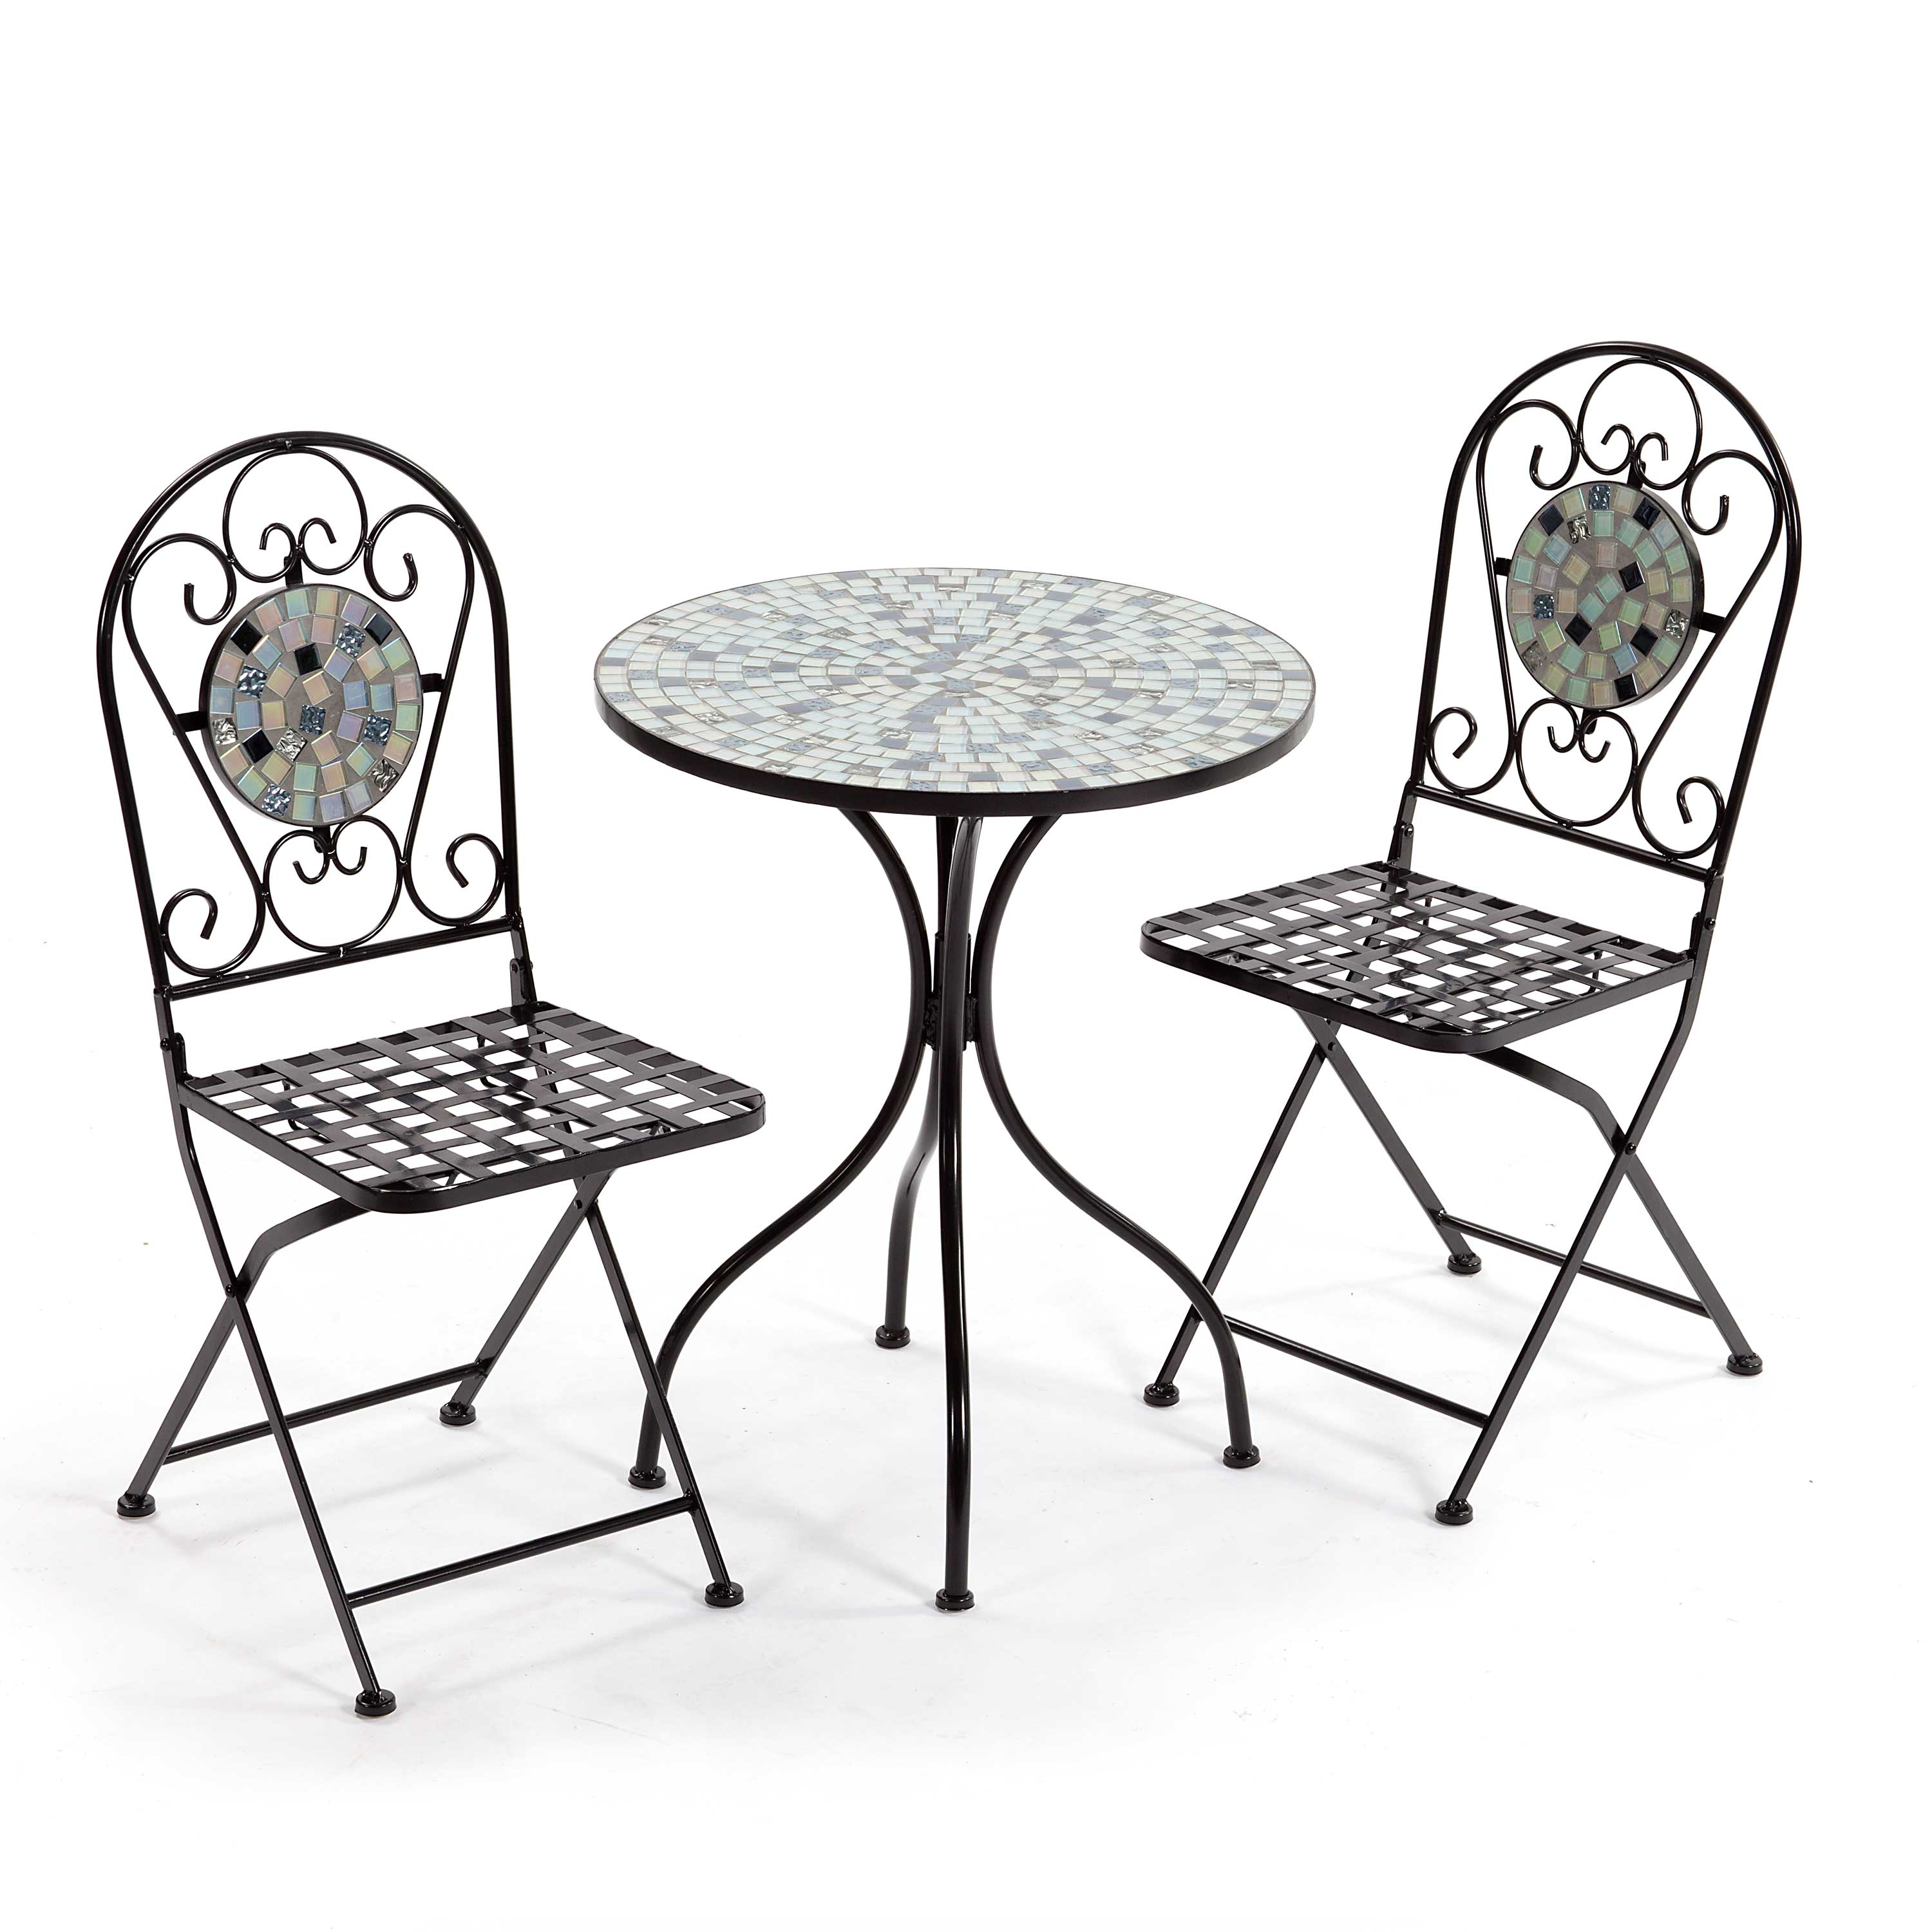 Suntime Multi Tiles Mosaic Bistro Set